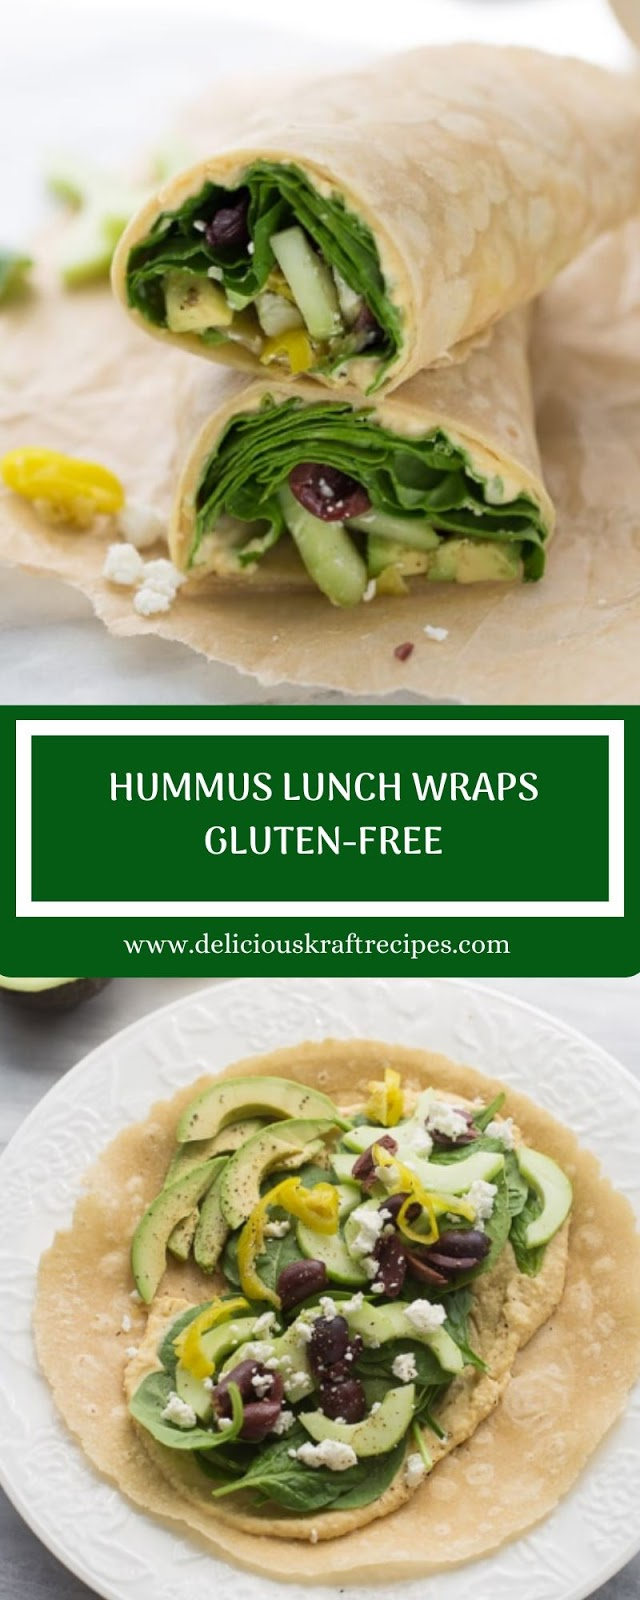 HUMMUS LUNCH WRAPS GLUTEN-FREE